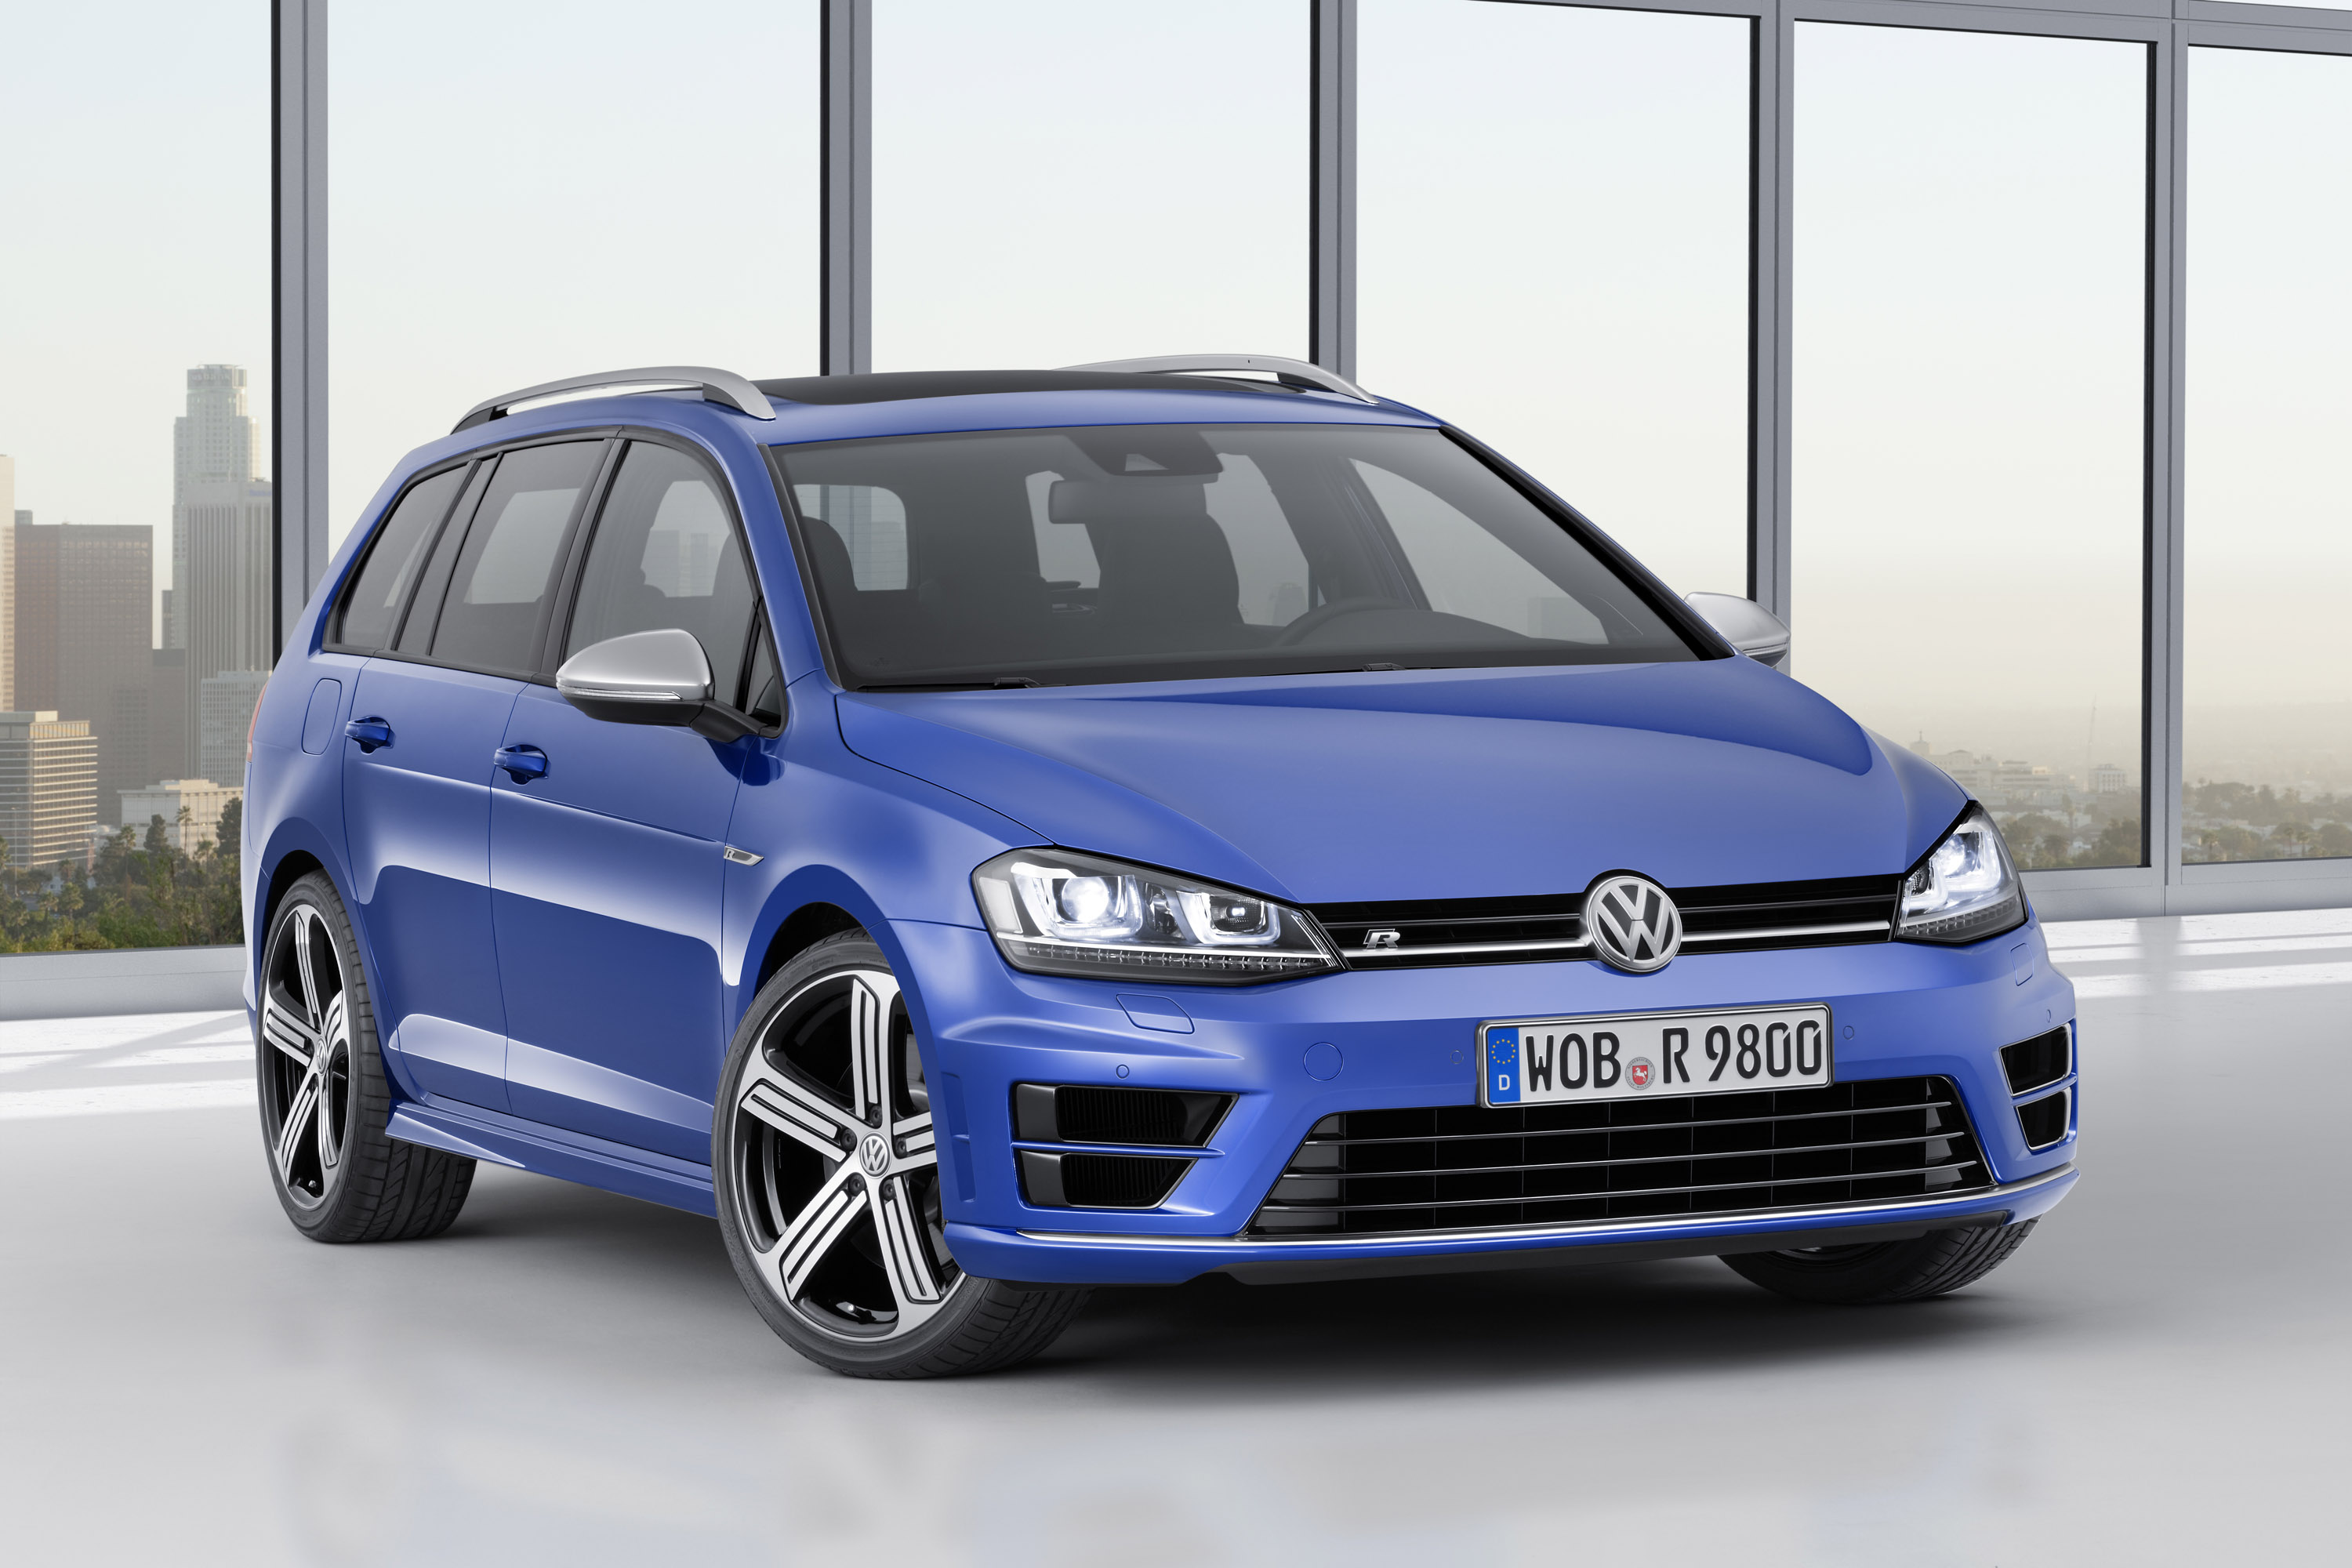 Volkswagen Golf R Variant photo #1